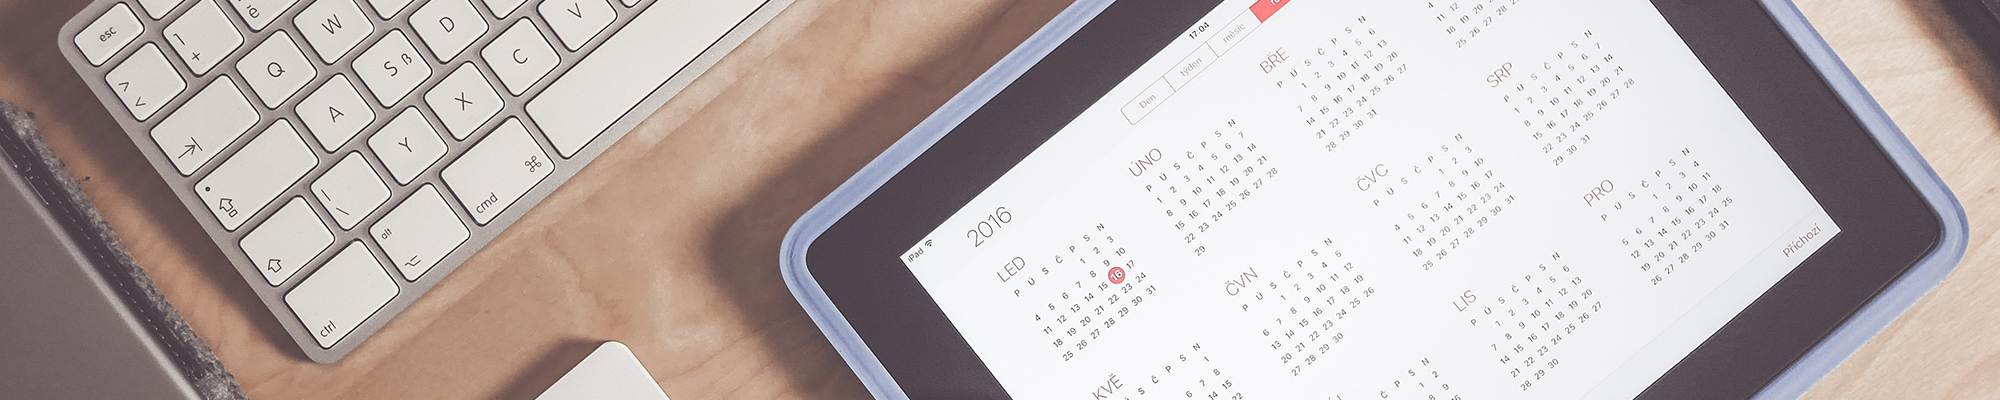 The pros and cons of a four-day work week - Keyboard, tablet and calendar - VMAGROUP